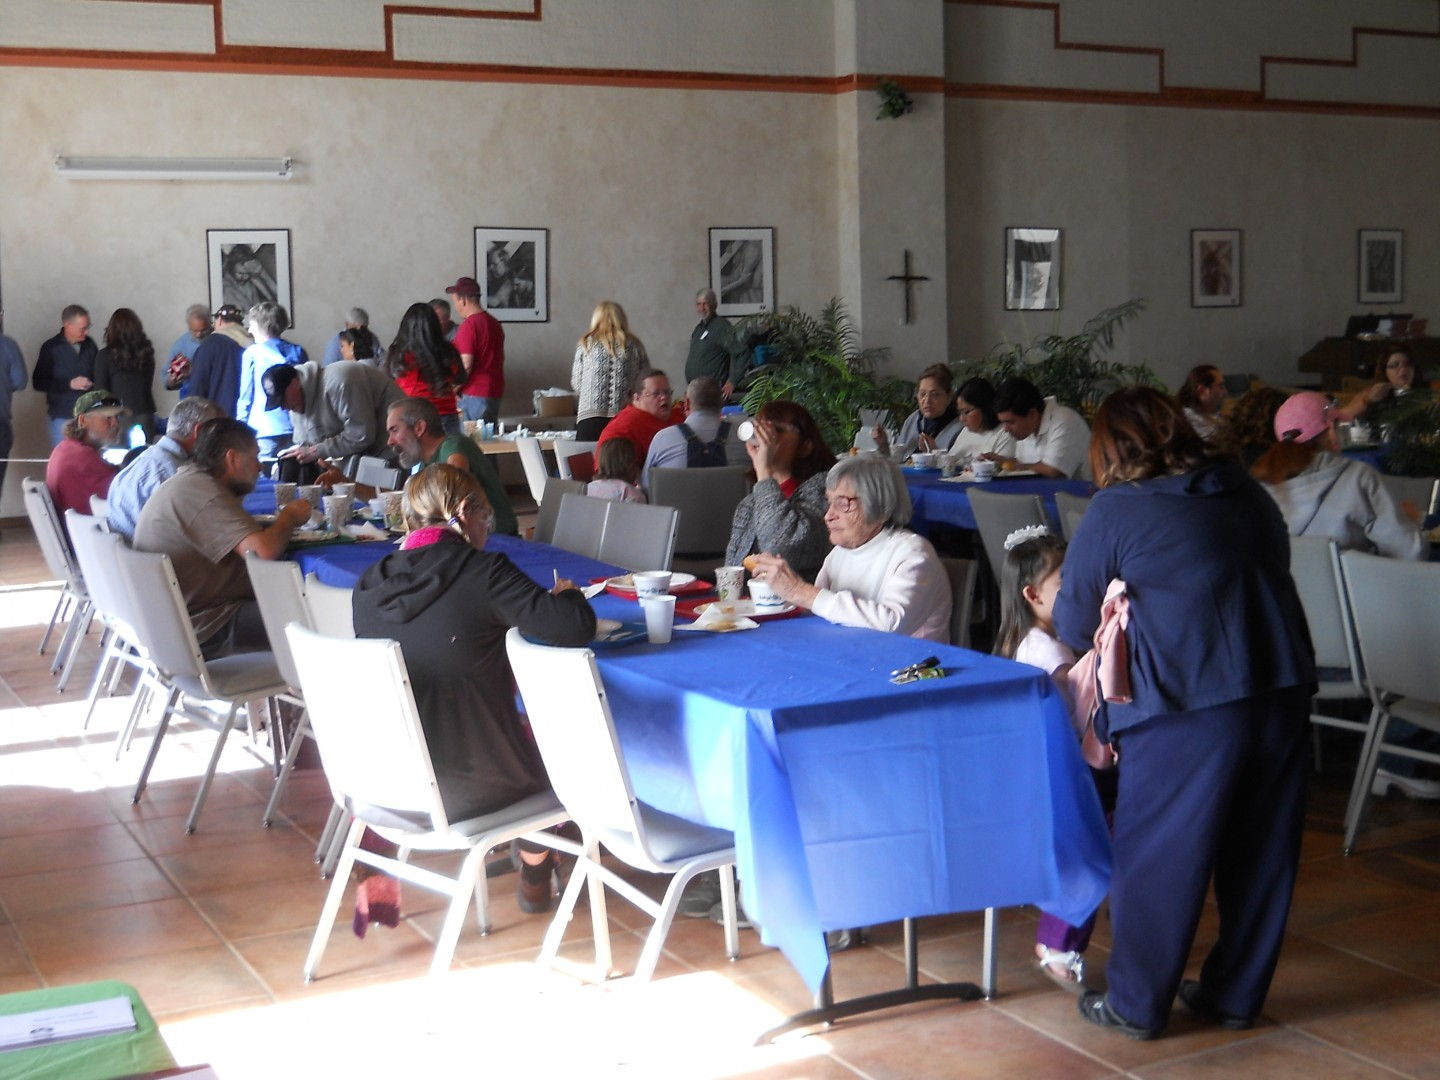 Guests sit at the tables at the community soup kitchen at Grace Episcopal Church, St. George, Utah, Feb. 14, 2014 | Photo by Aspen Stoddard, St. George News